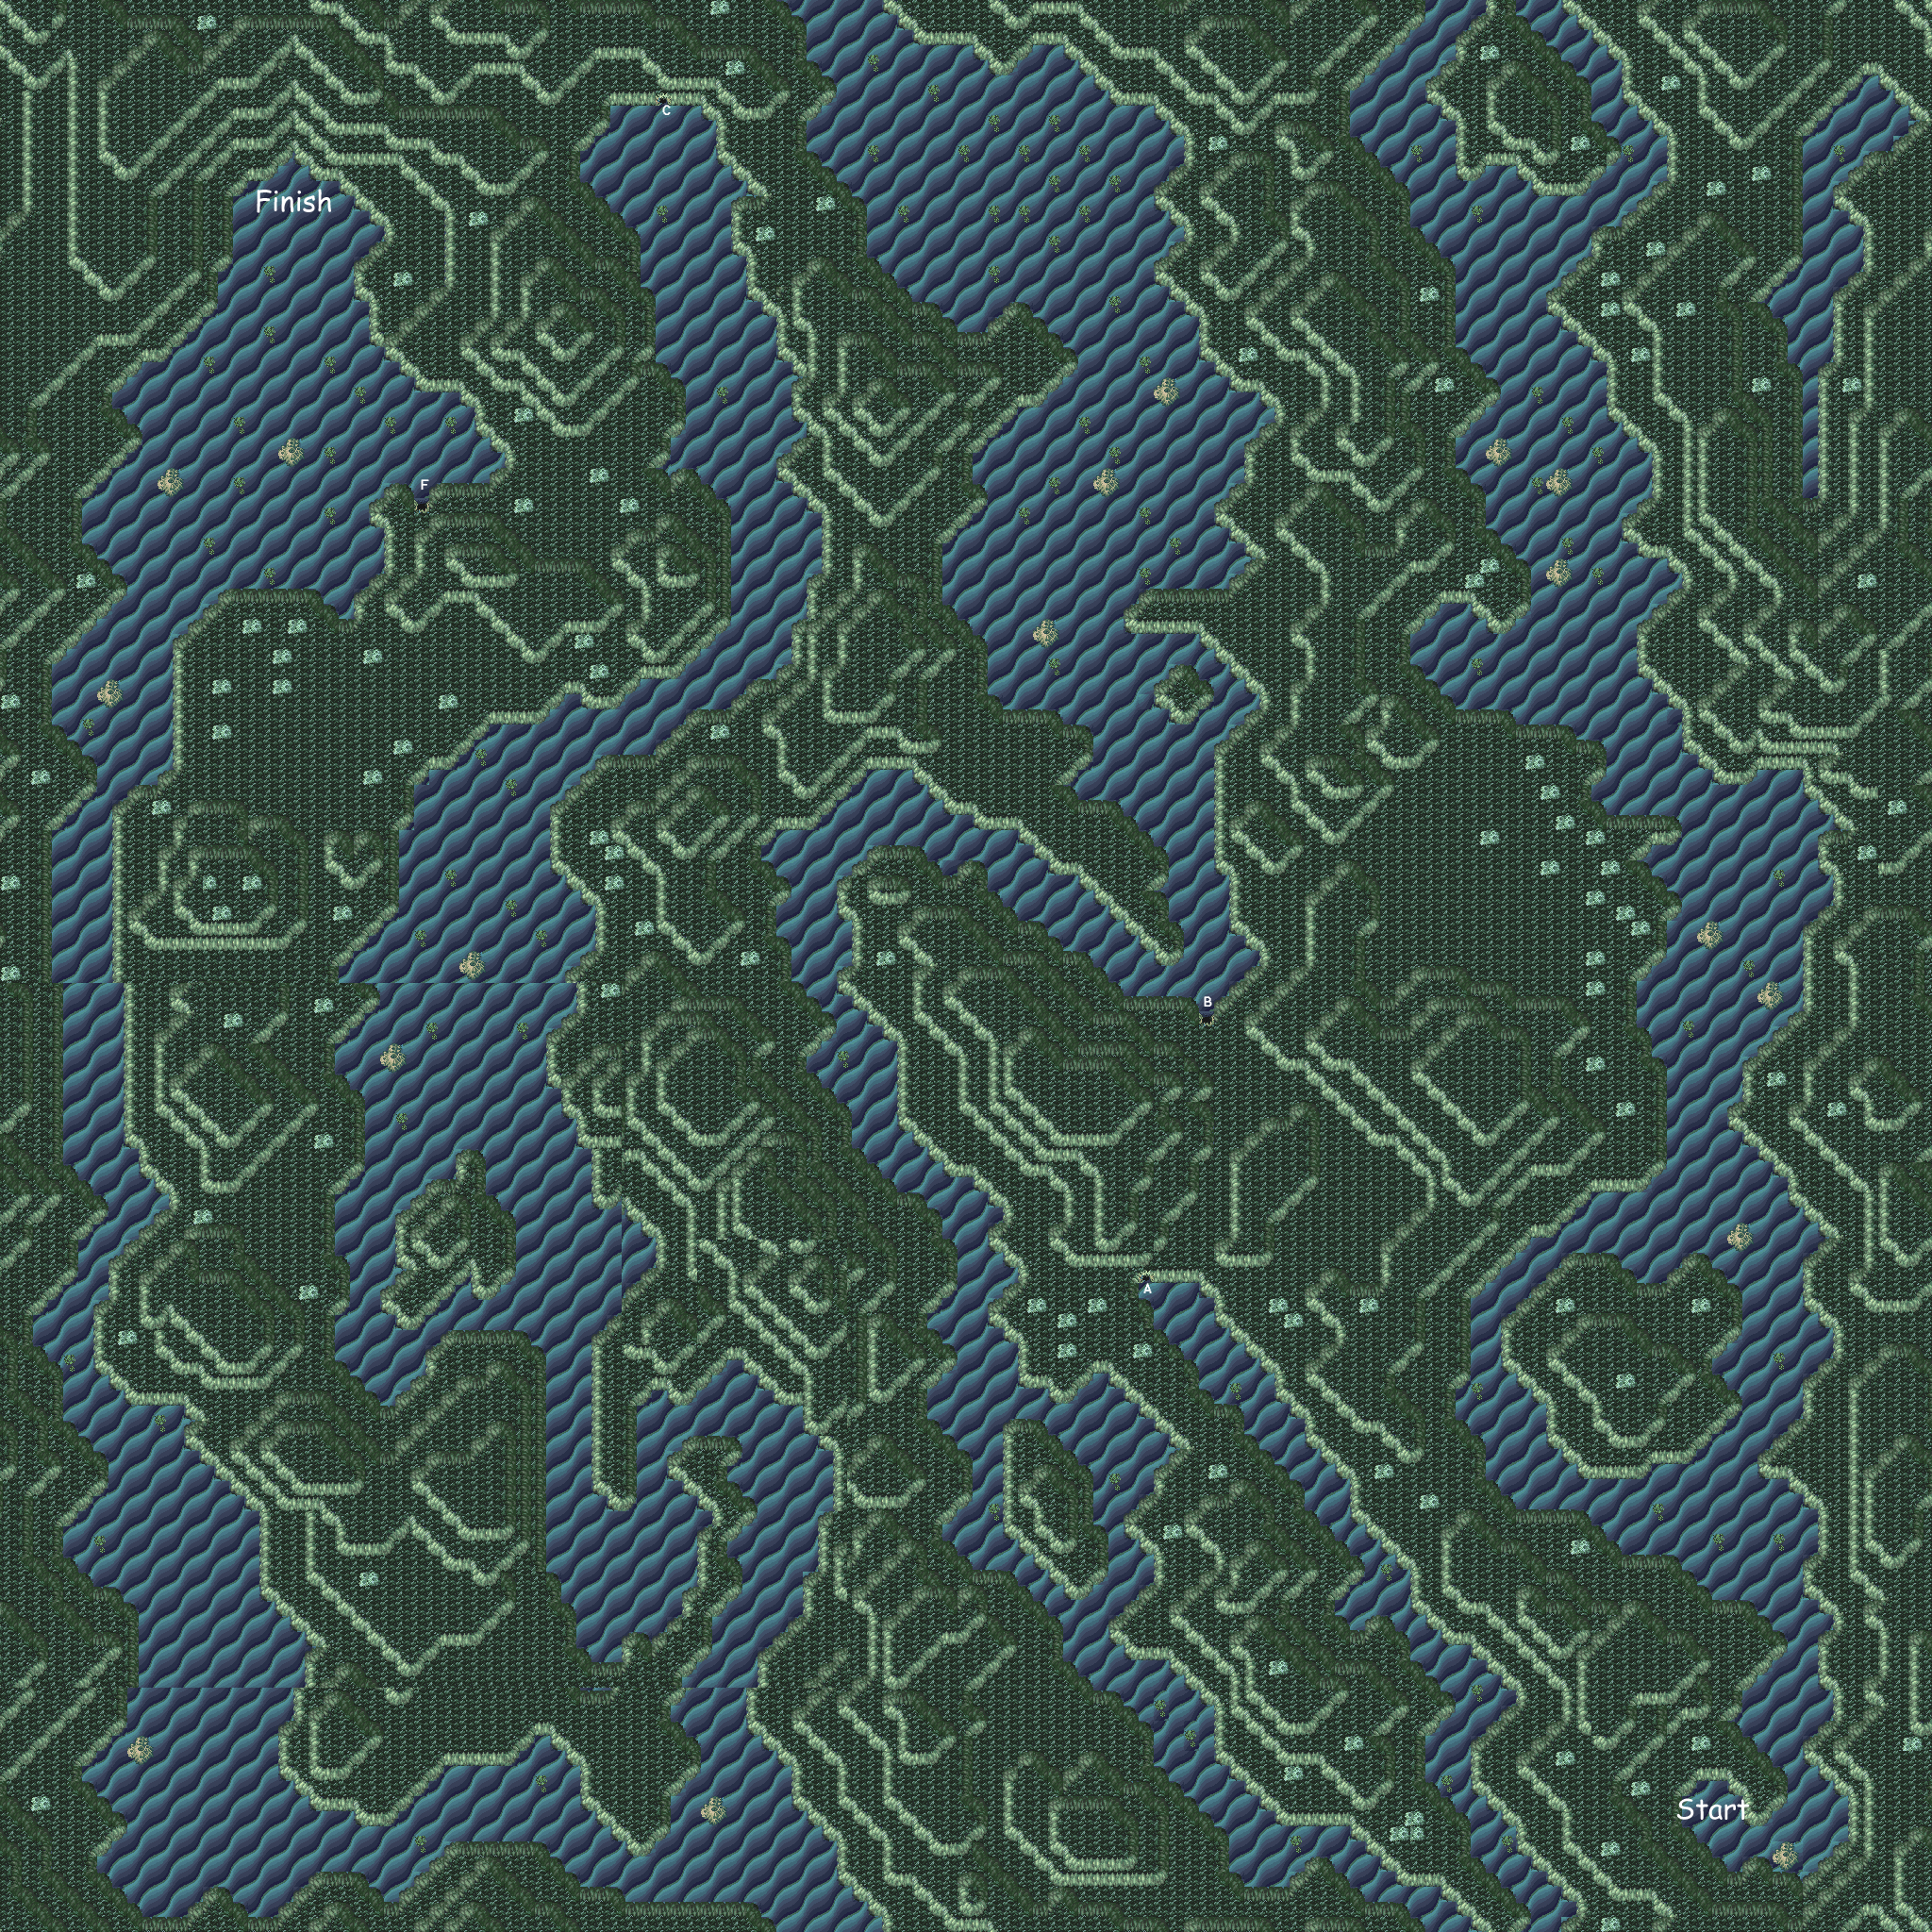 final fantasy vi serpent's trench map